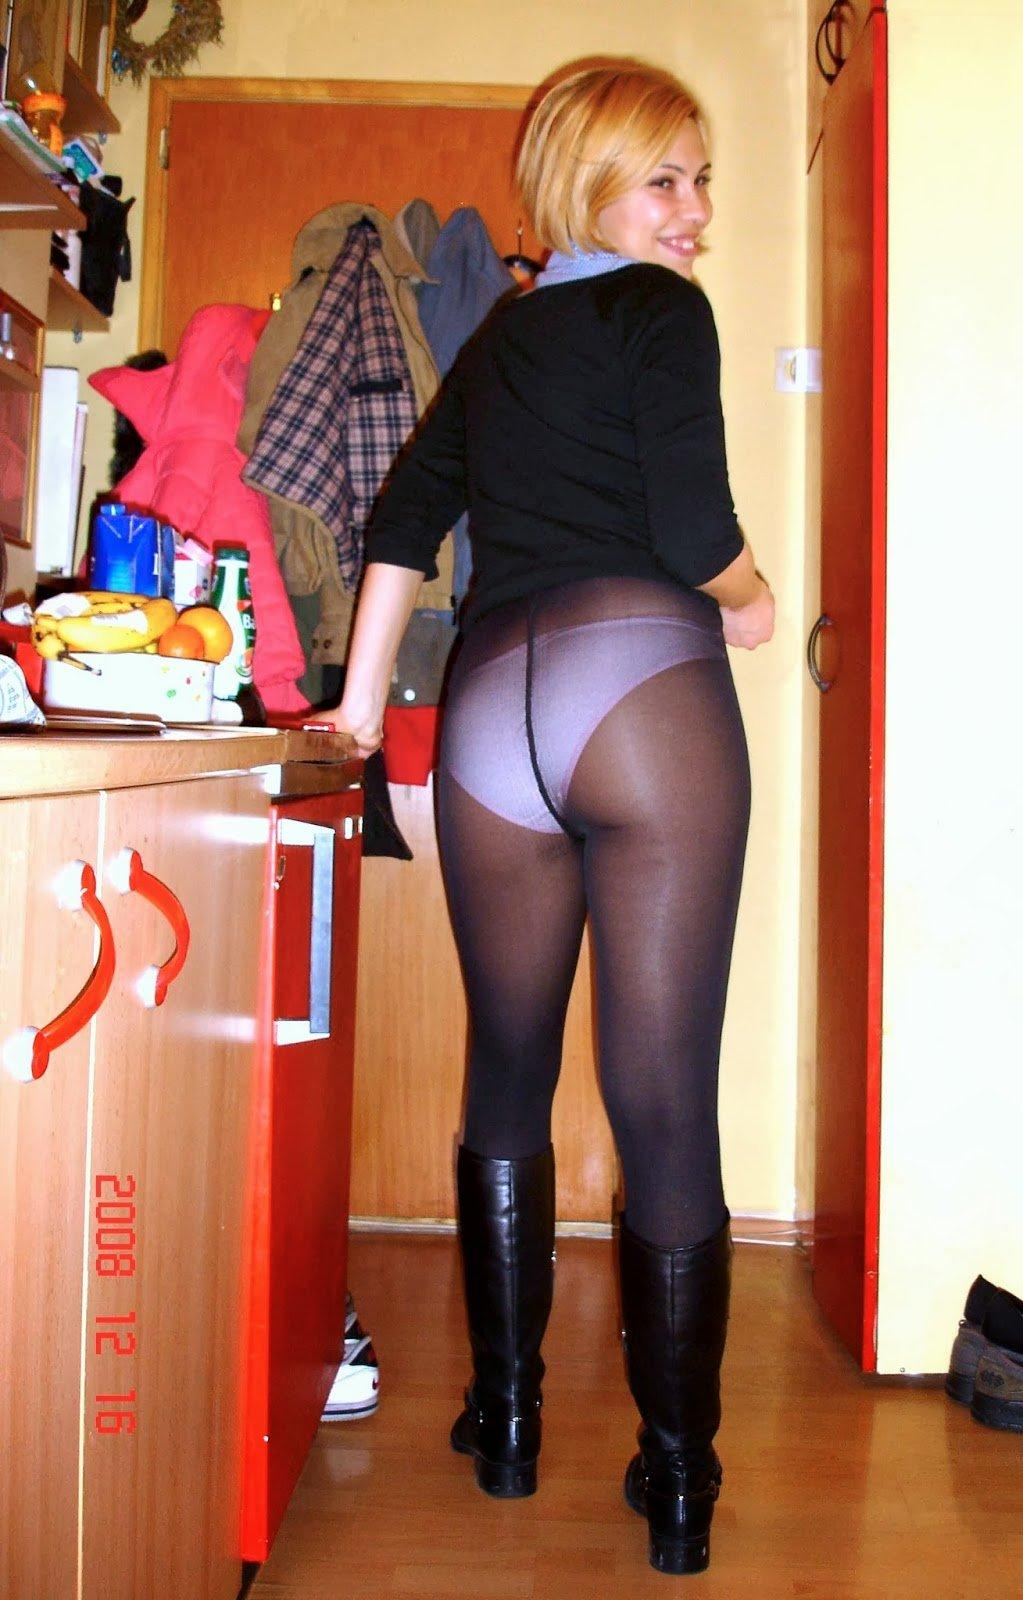 Spanking stories pantyhose images 783